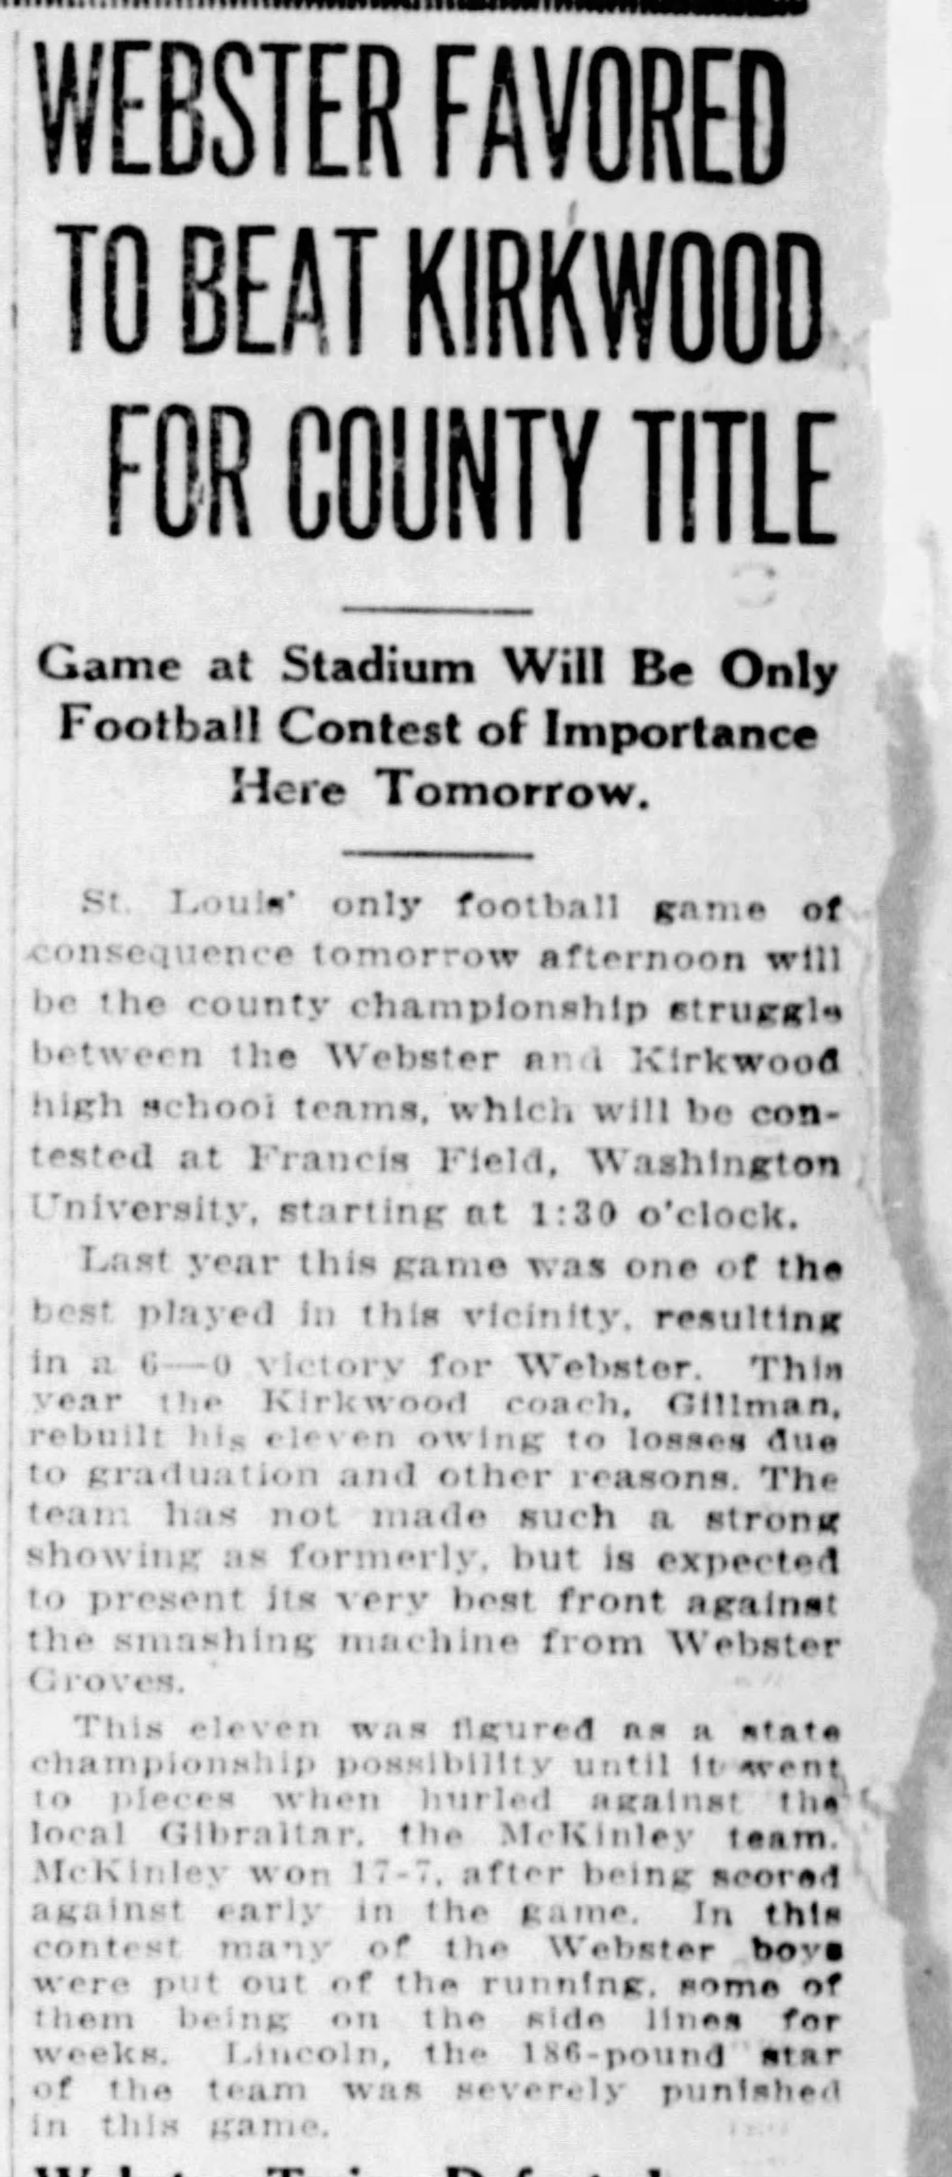 The Turkey Day Game: A look back at Webster Groves vs. Kirkwood